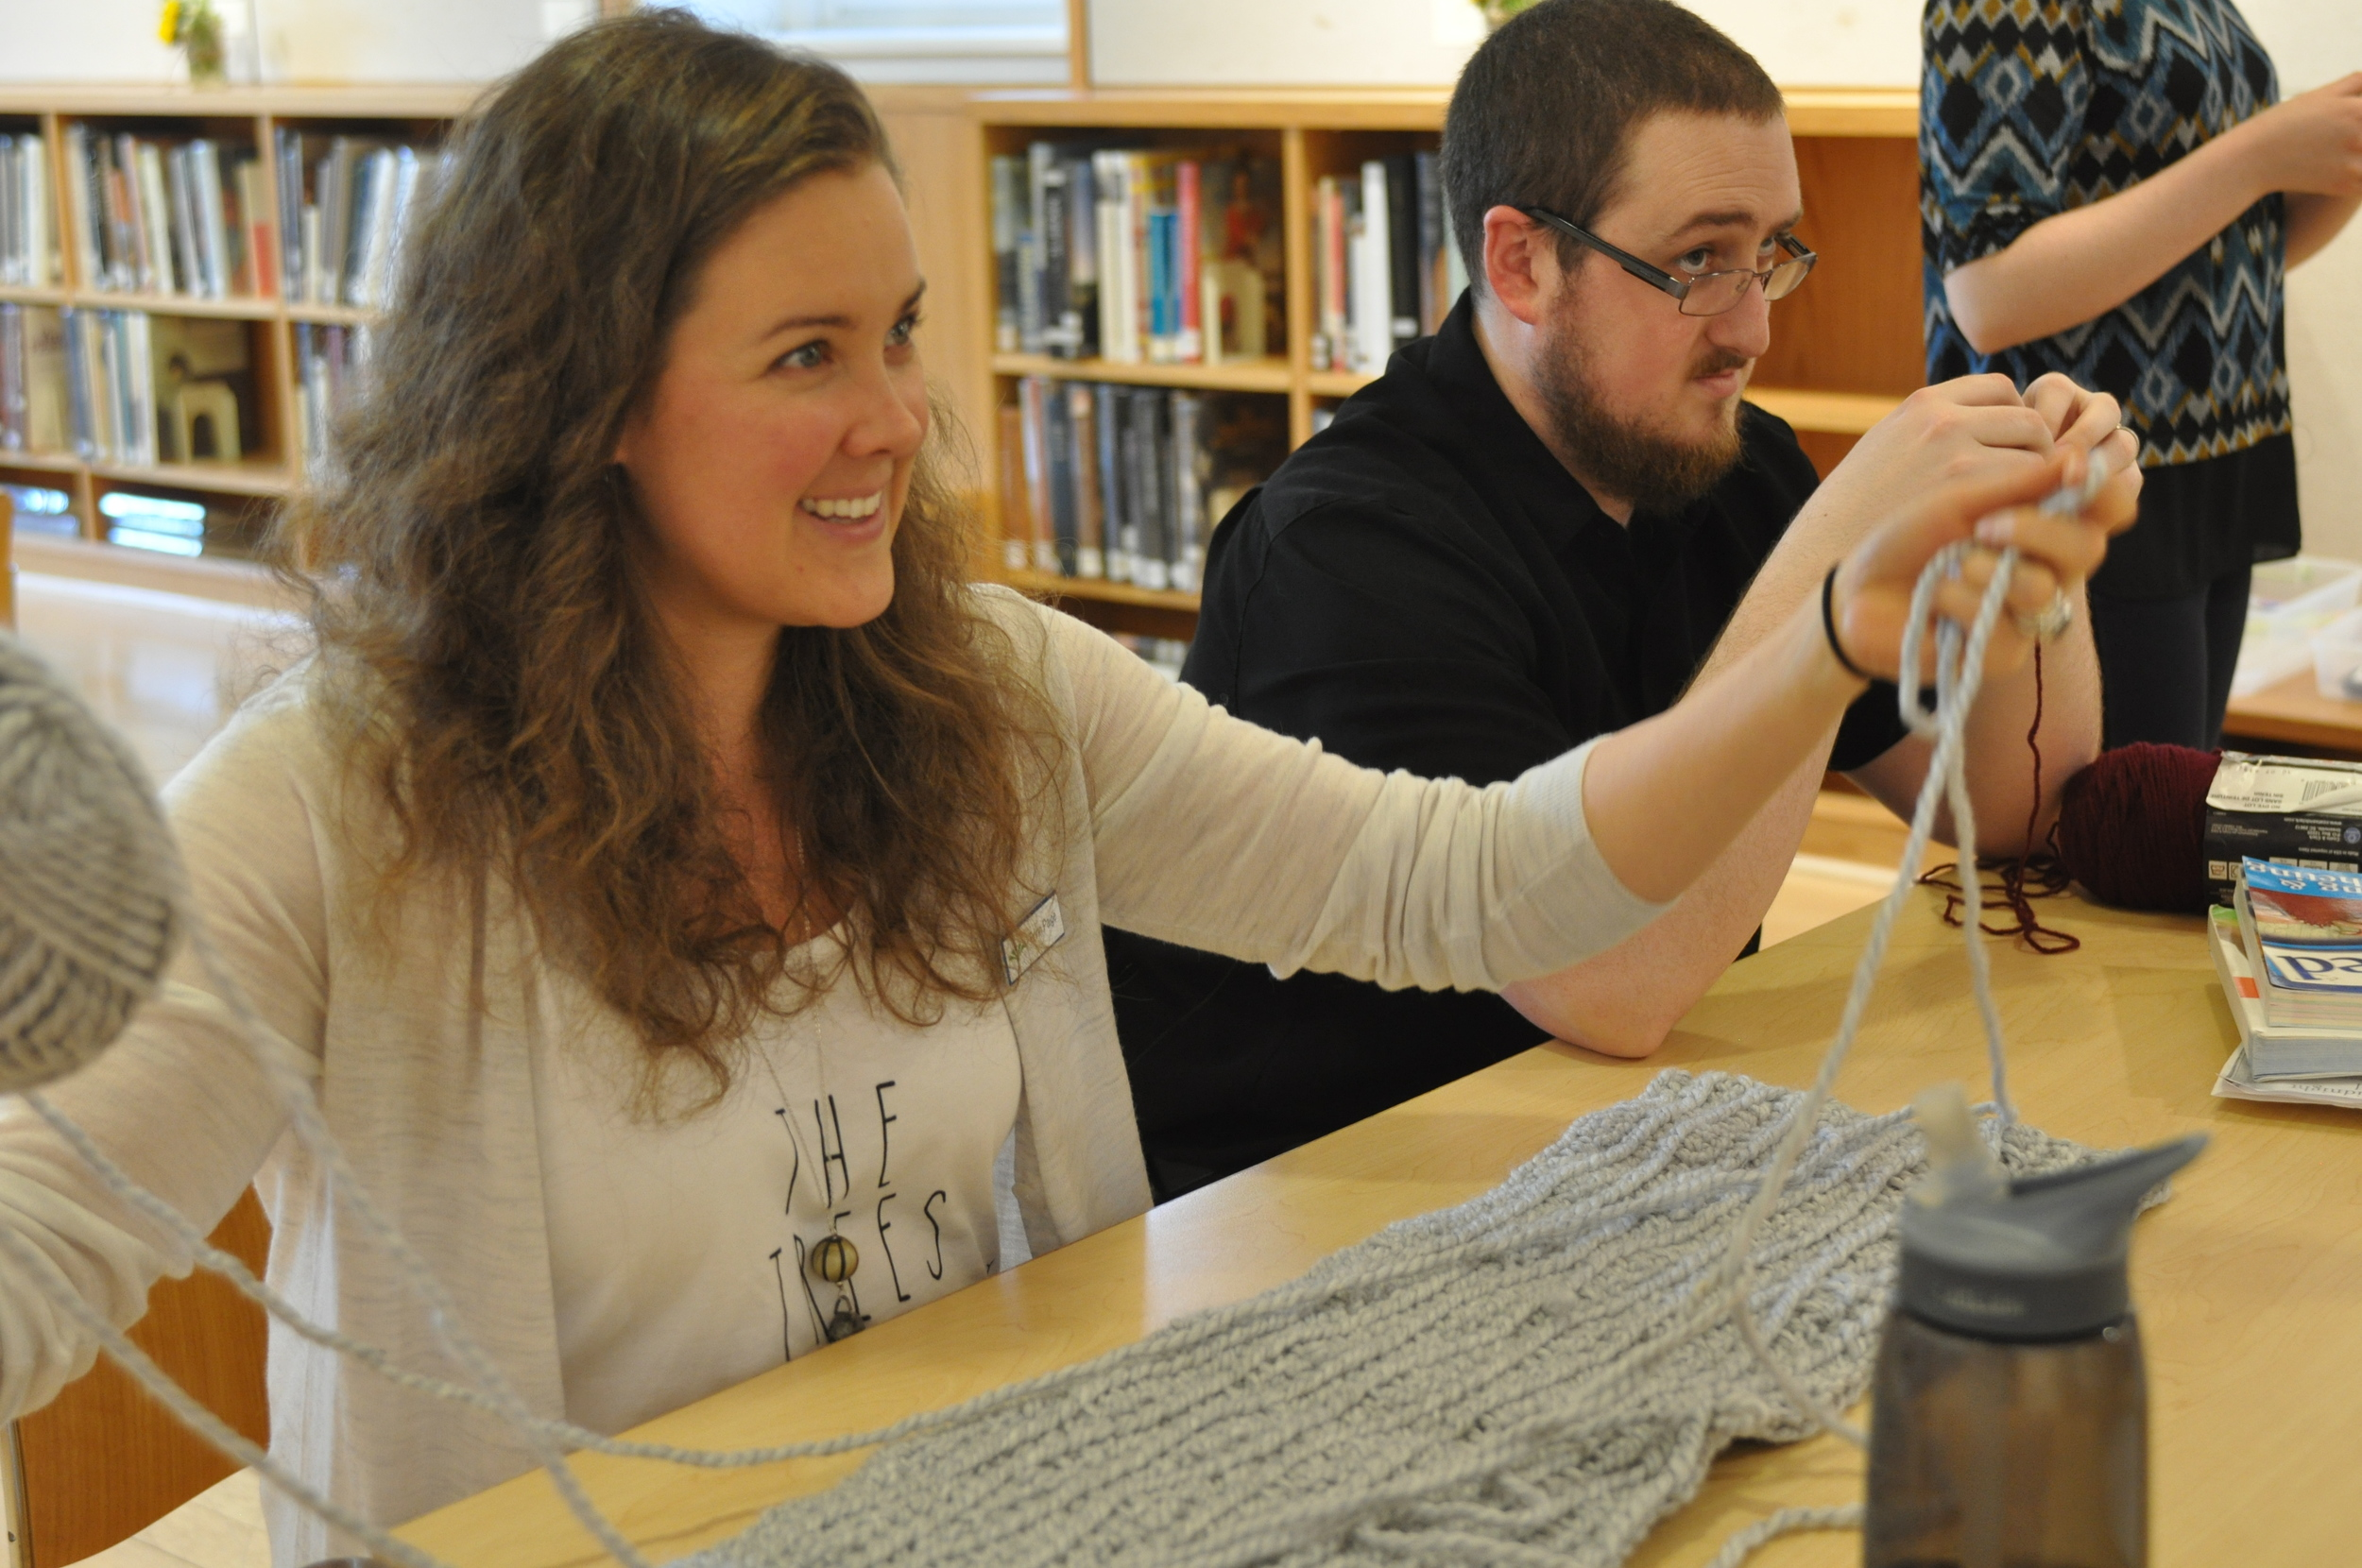 Stitch It! at New Canaan Library